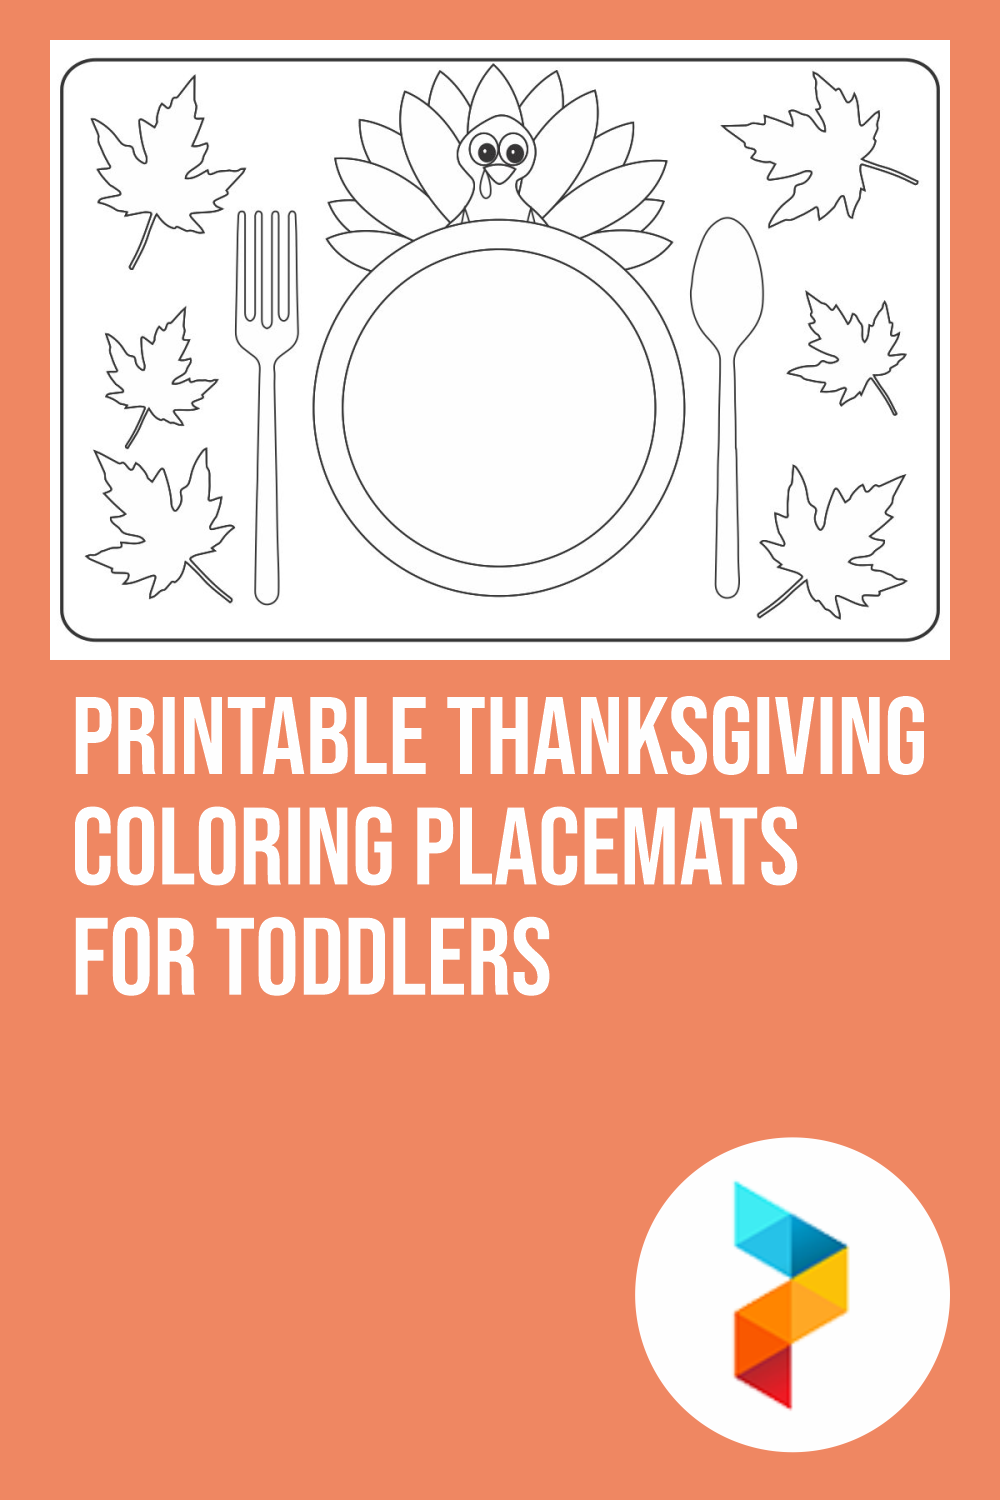 Printable Thanksgiving Coloring Placemats For Toddlers